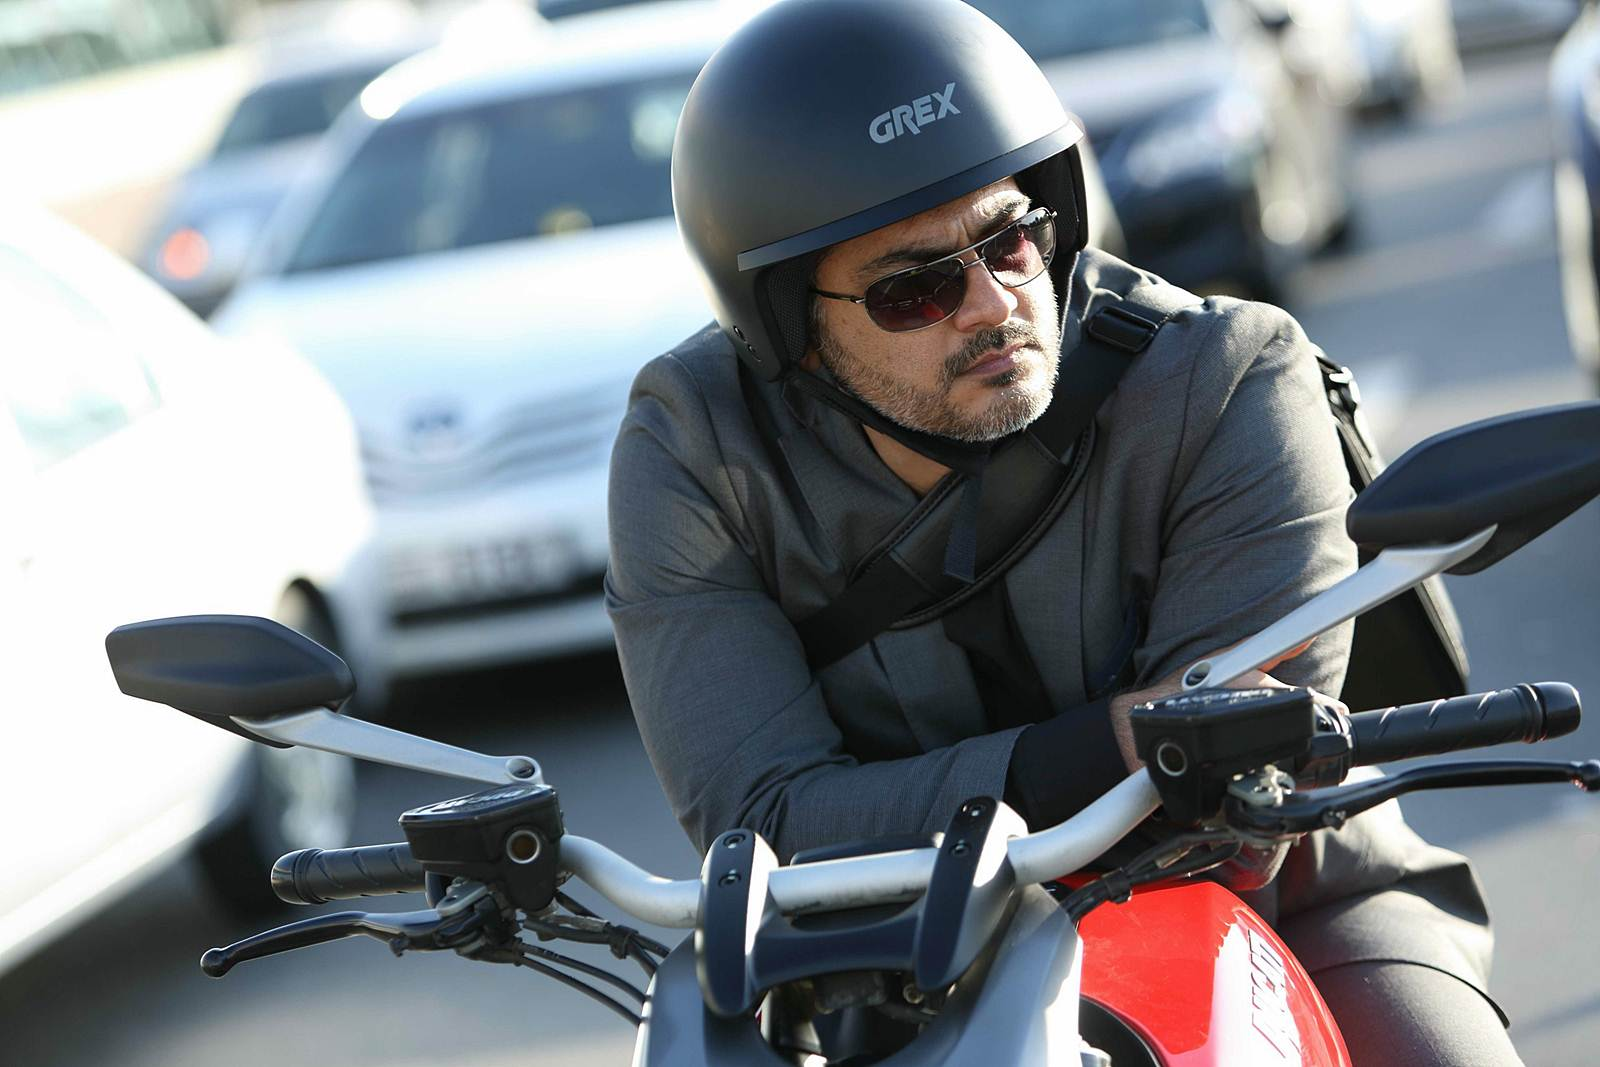 Arrambam_New_Stills33cce50551b19595635c192b31ddc7b5